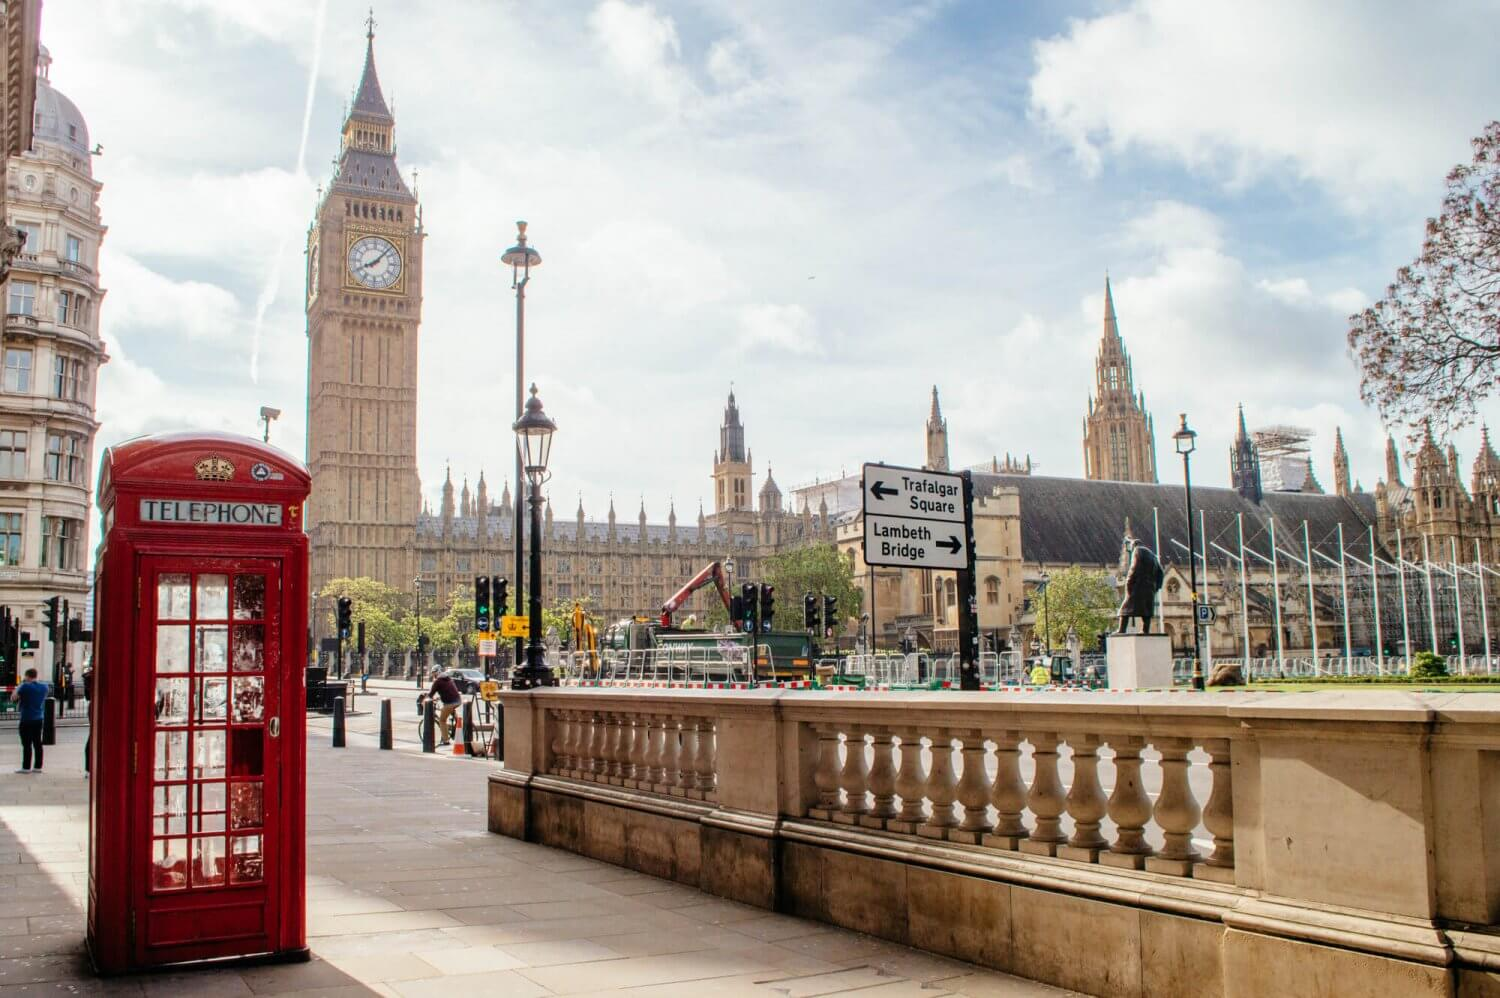 Iconic photo of London featuring Big Ben and a red phone booth